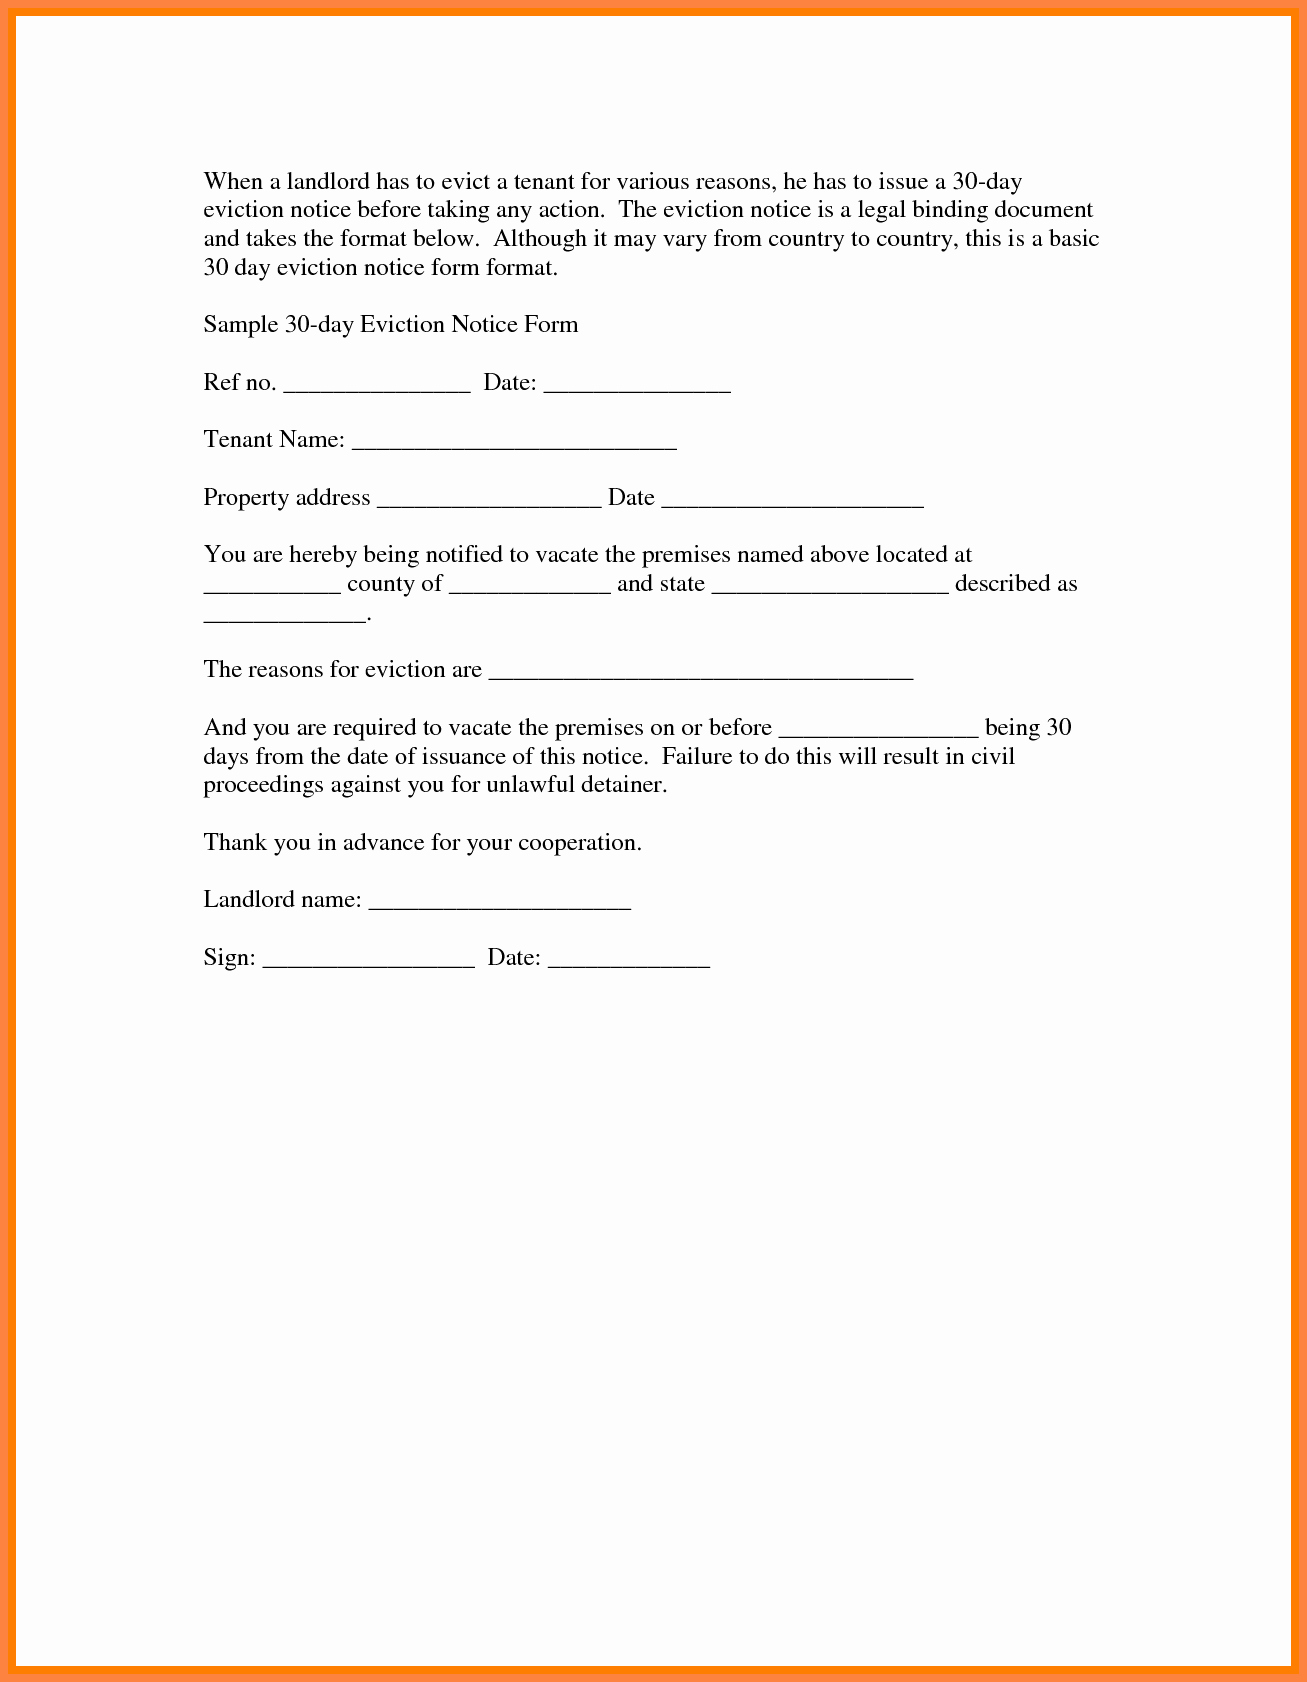 30 Day Eviction Notice Template Fresh 6 30 Day Eviction Notice Pdf